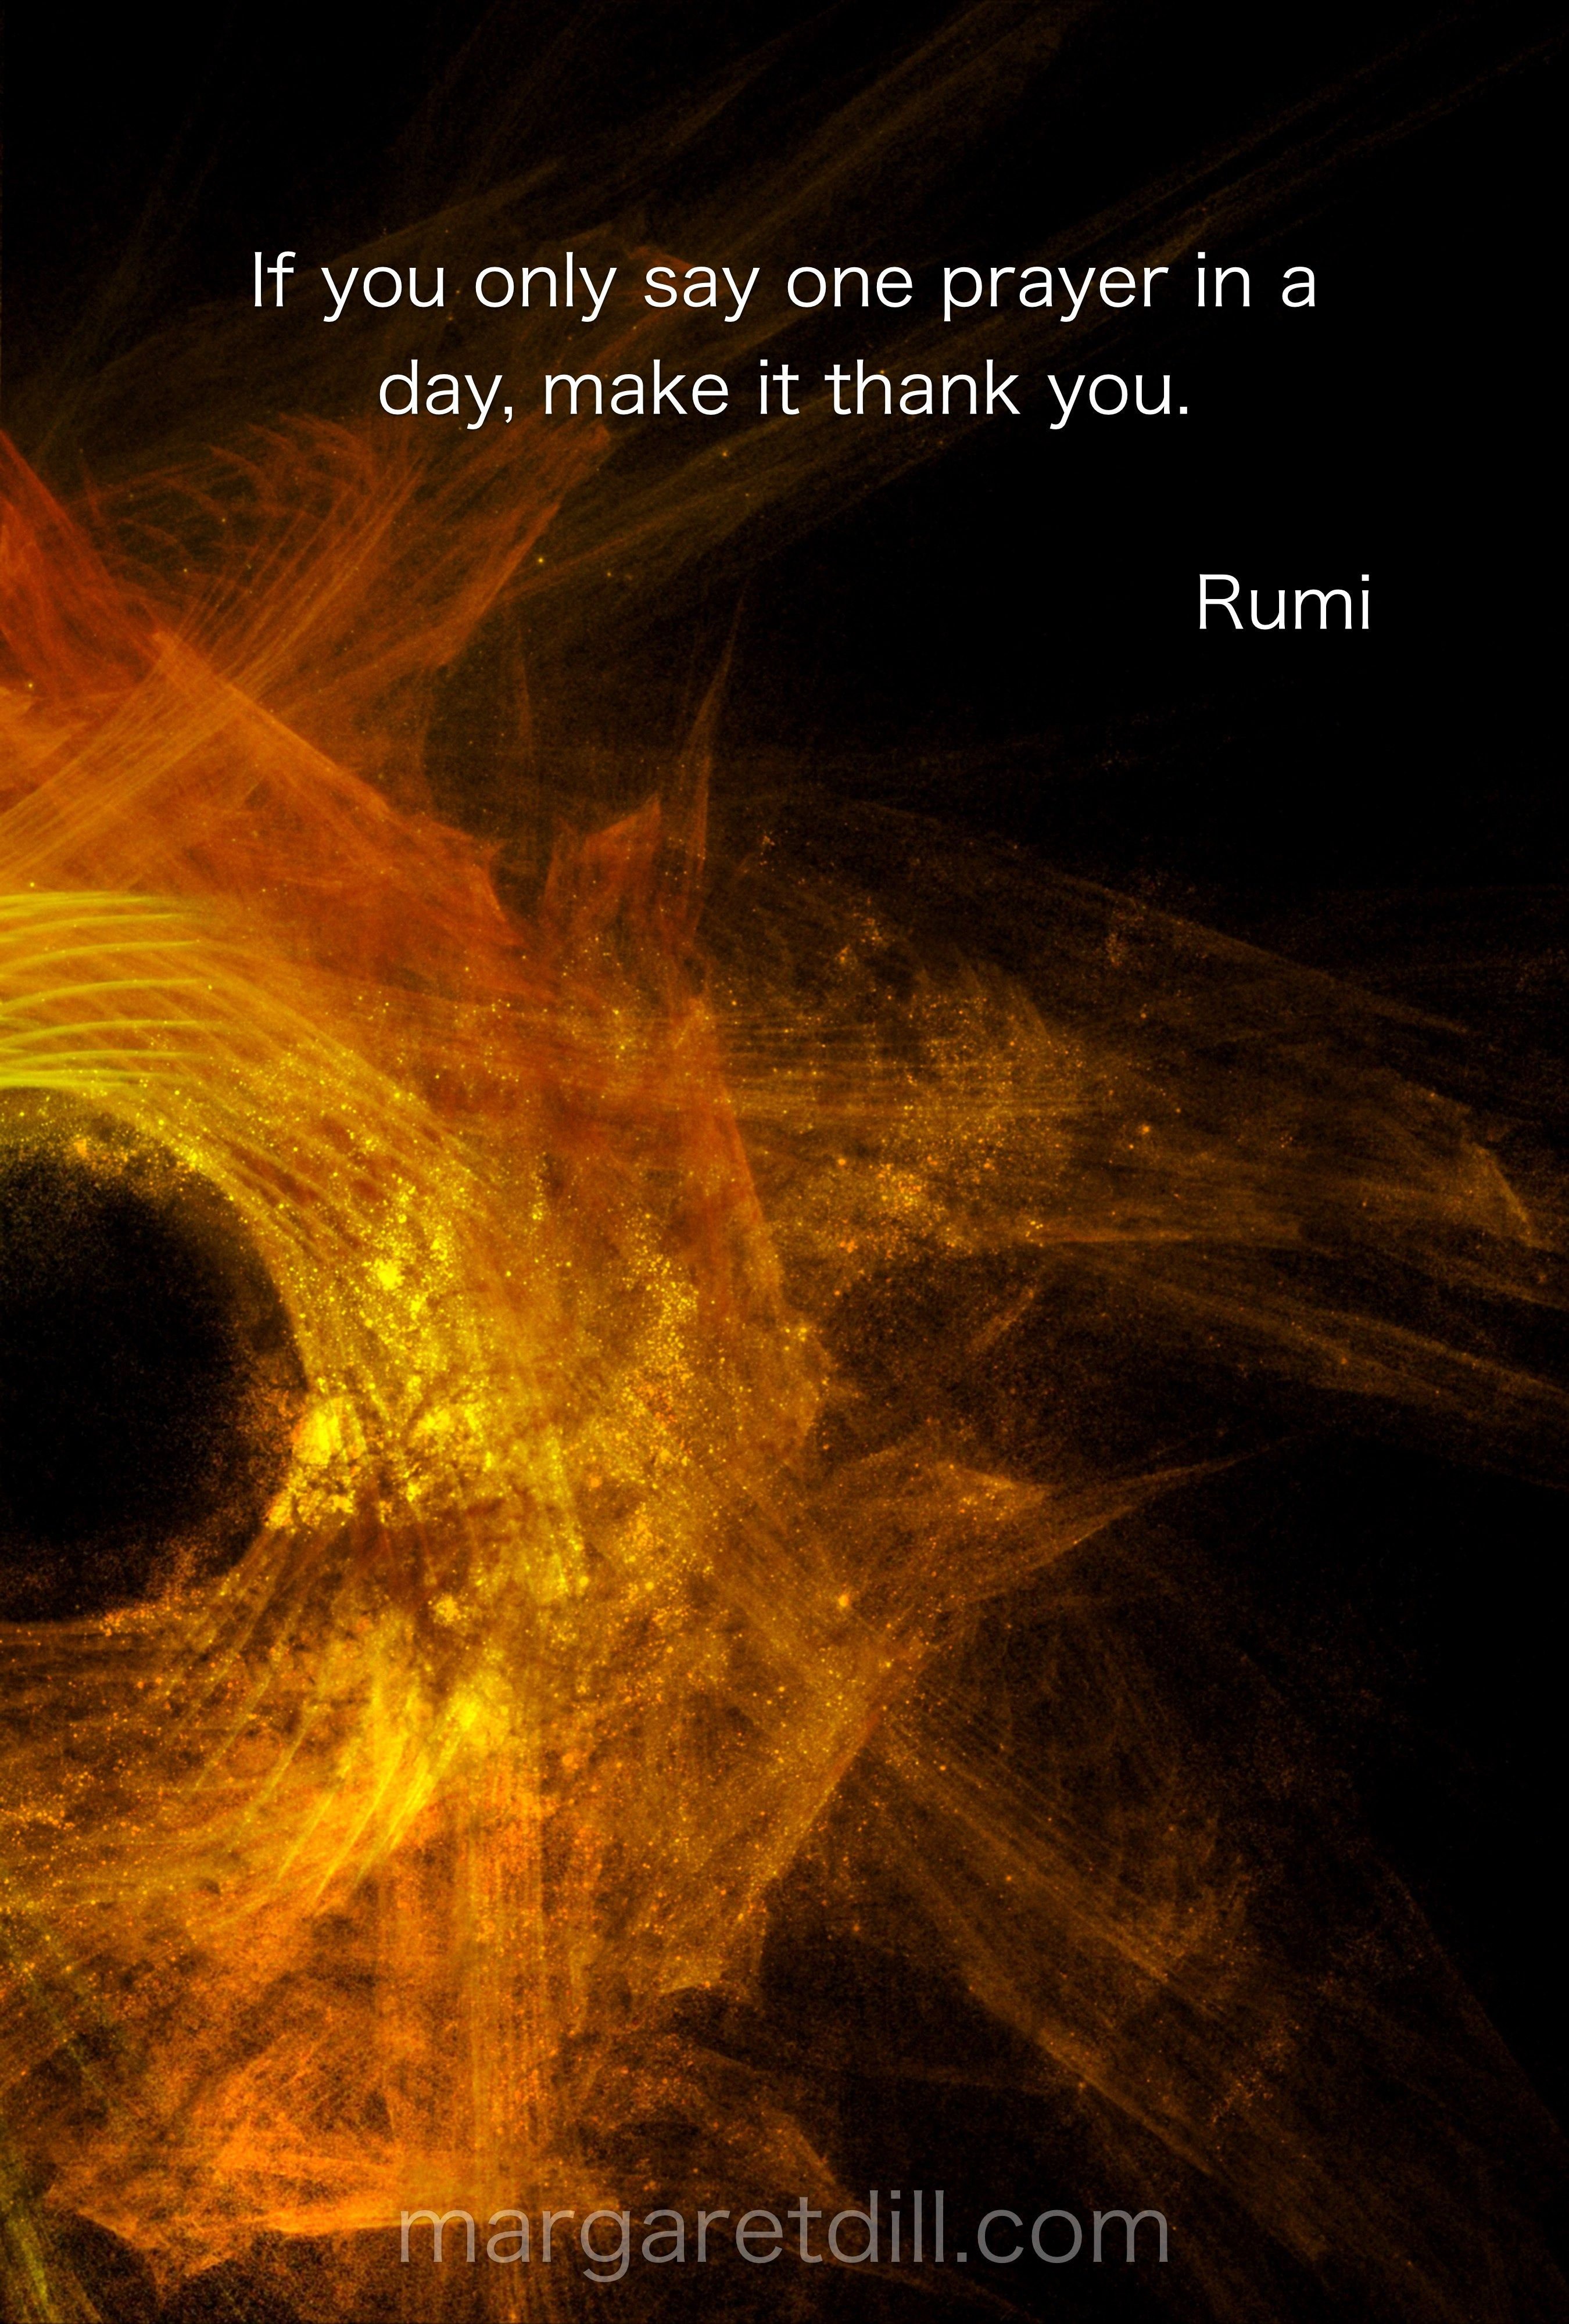 If You Only Say One Prayer Rumi Quote Rumi Quotes Rumi